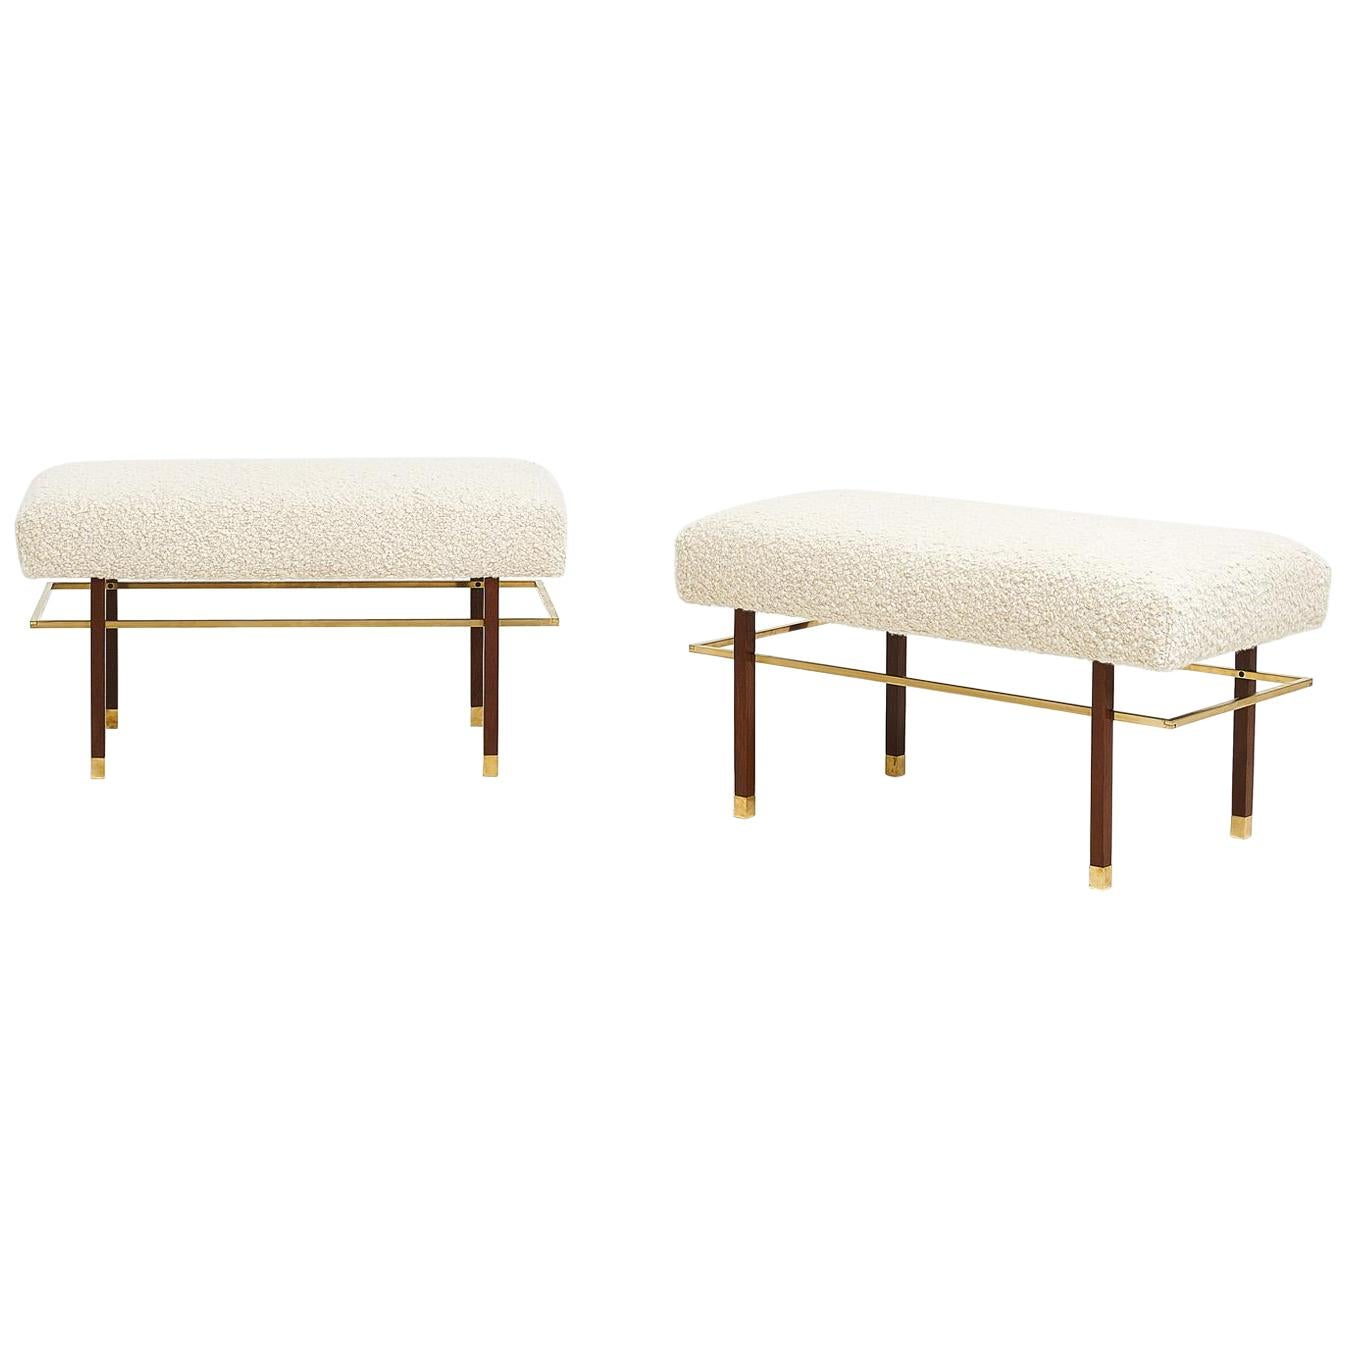 Harvey Probber Brass Frame Benches in White Boucle, Circa 1950